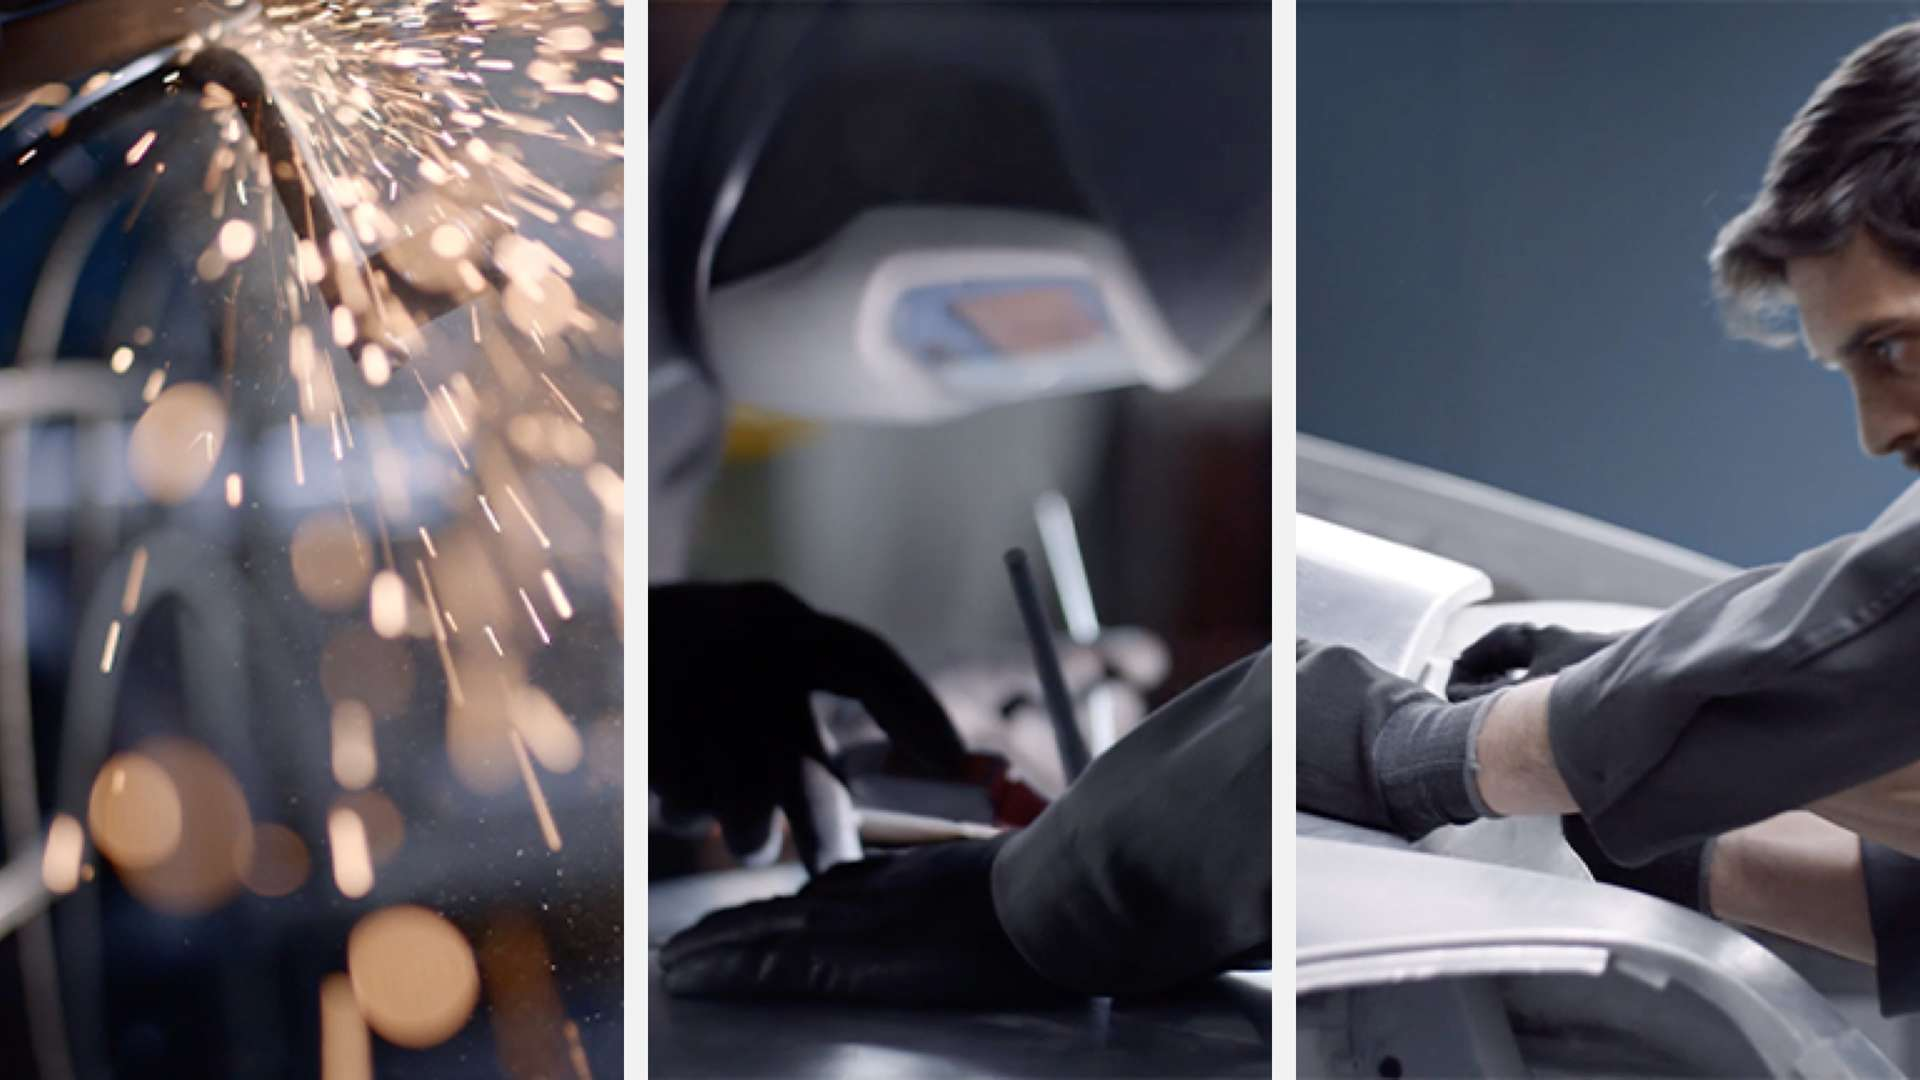 images of roll-royce bespoke manufacturing process